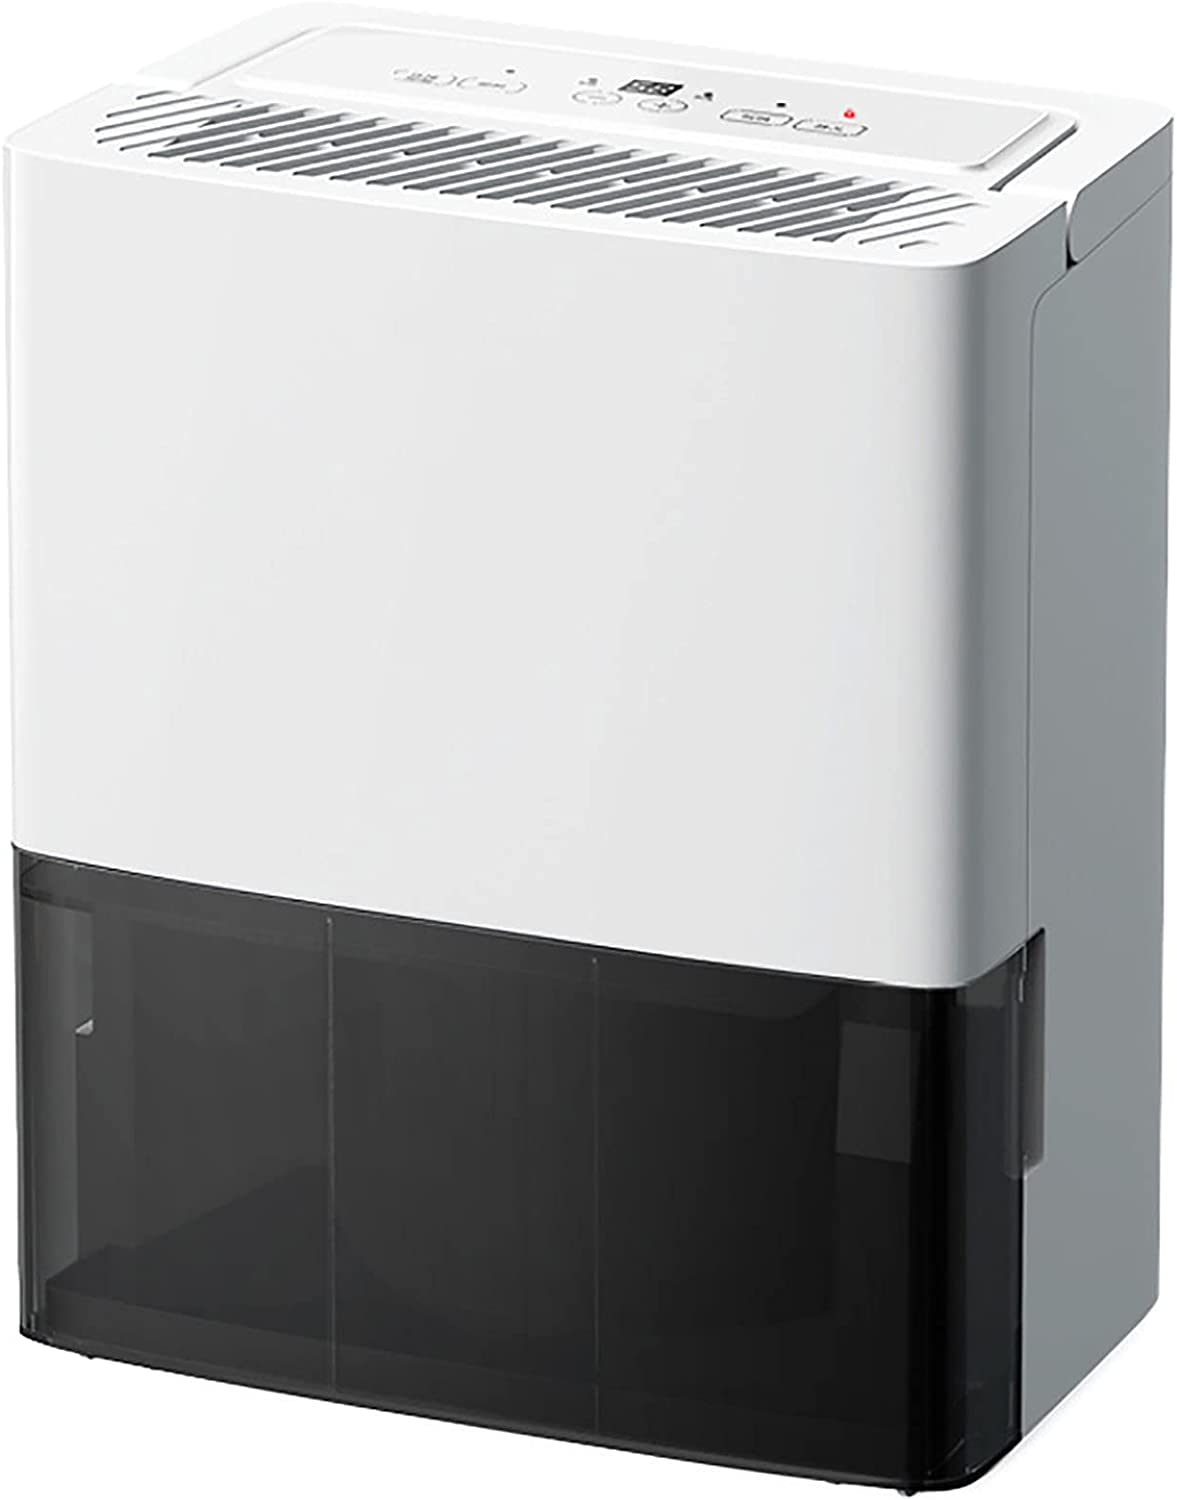 CLIng A surprise price is realized Dehumidifier for Home Bedroom Garage Max 42% OFF Dehumidifie Basements